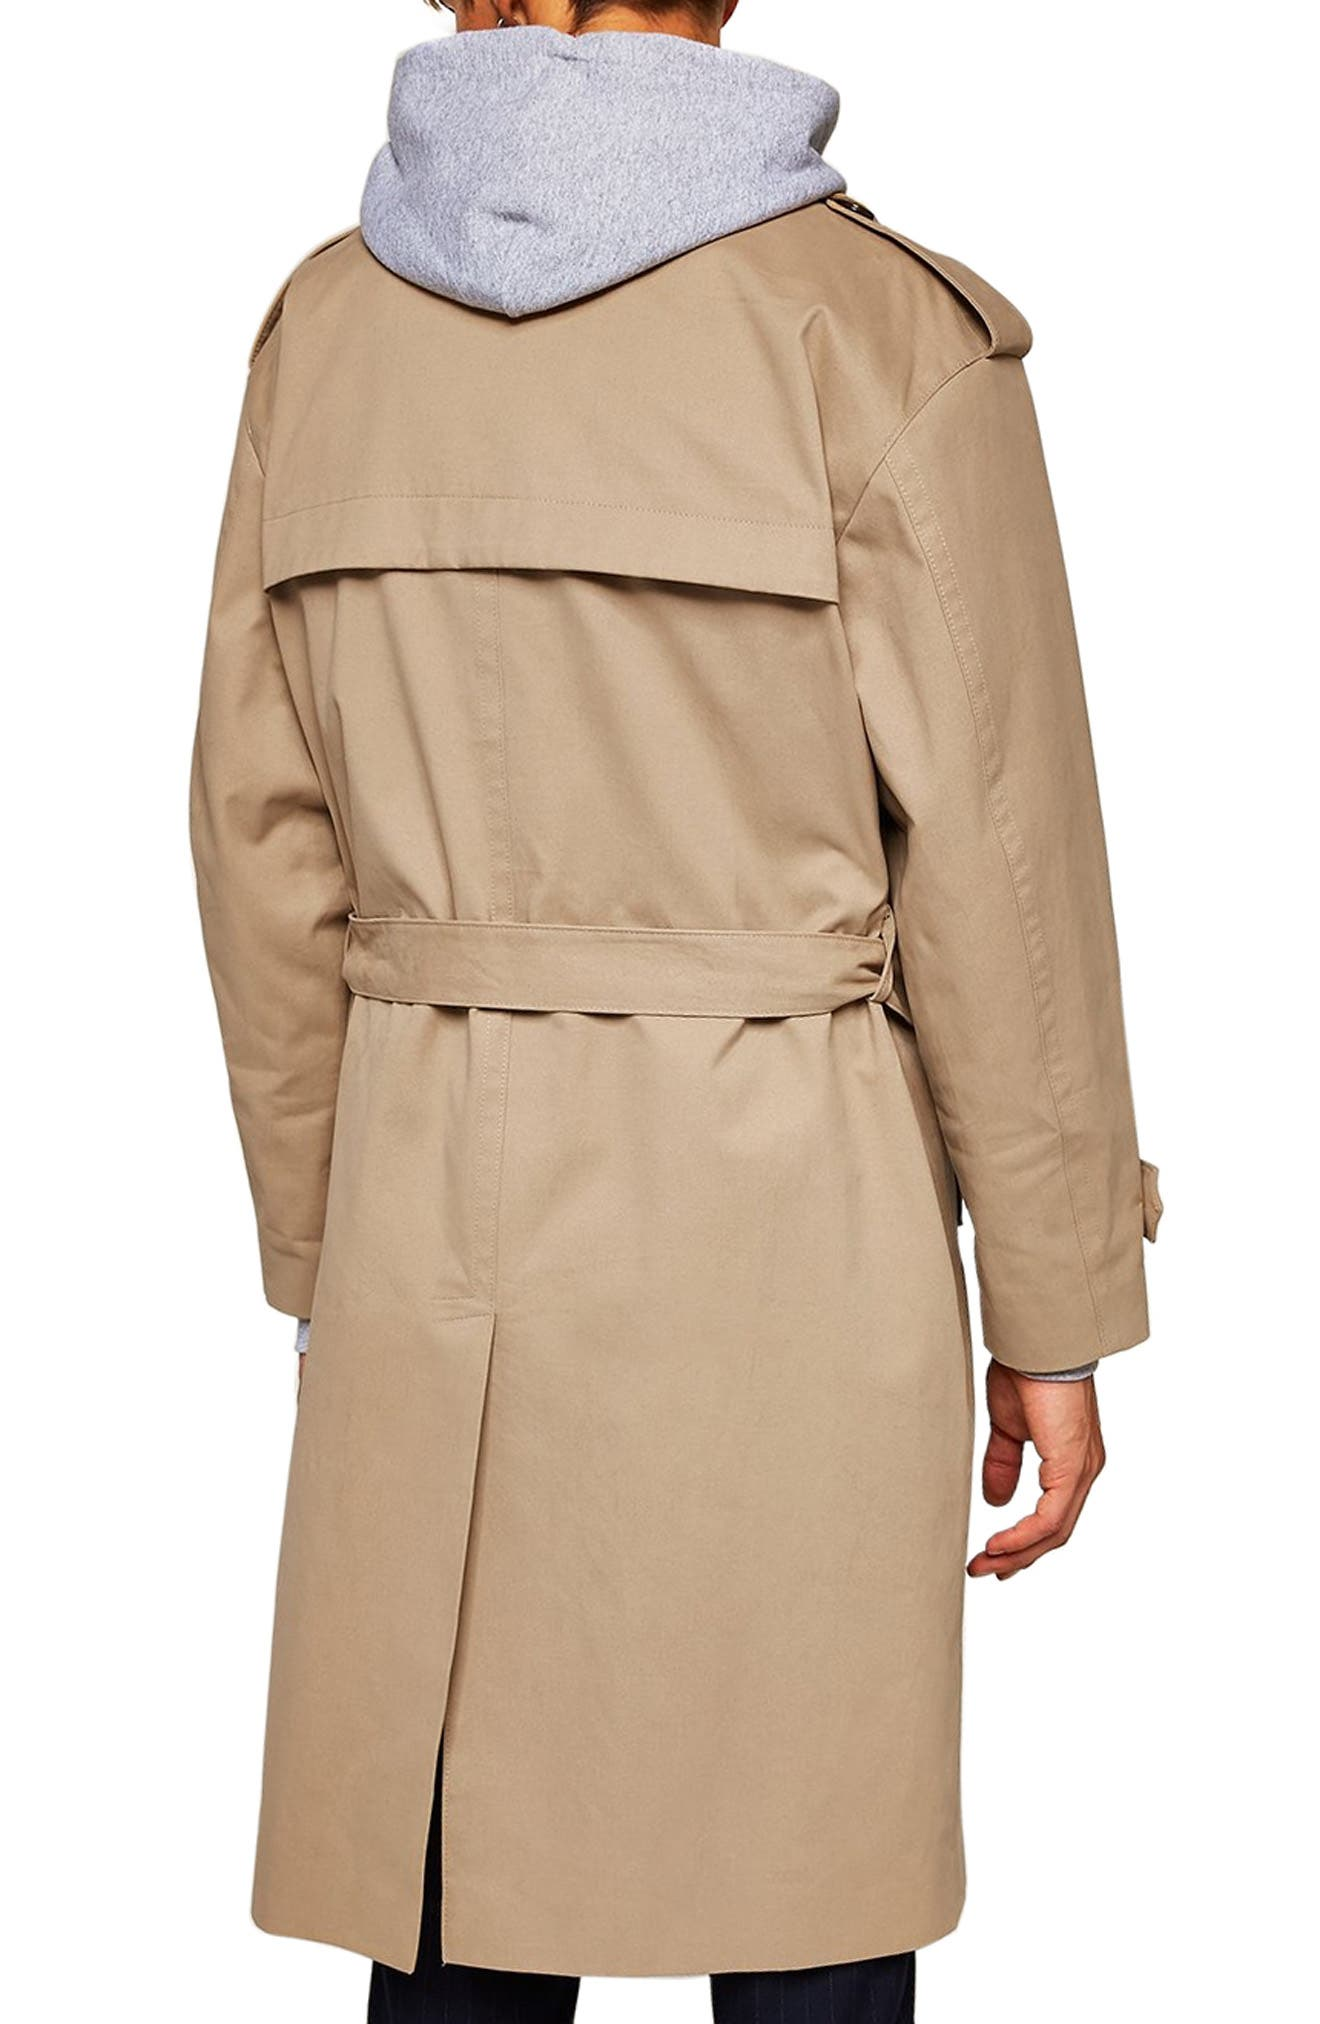 Double Breasted Trench Coat,                             Alternate thumbnail 2, color,                             STONE